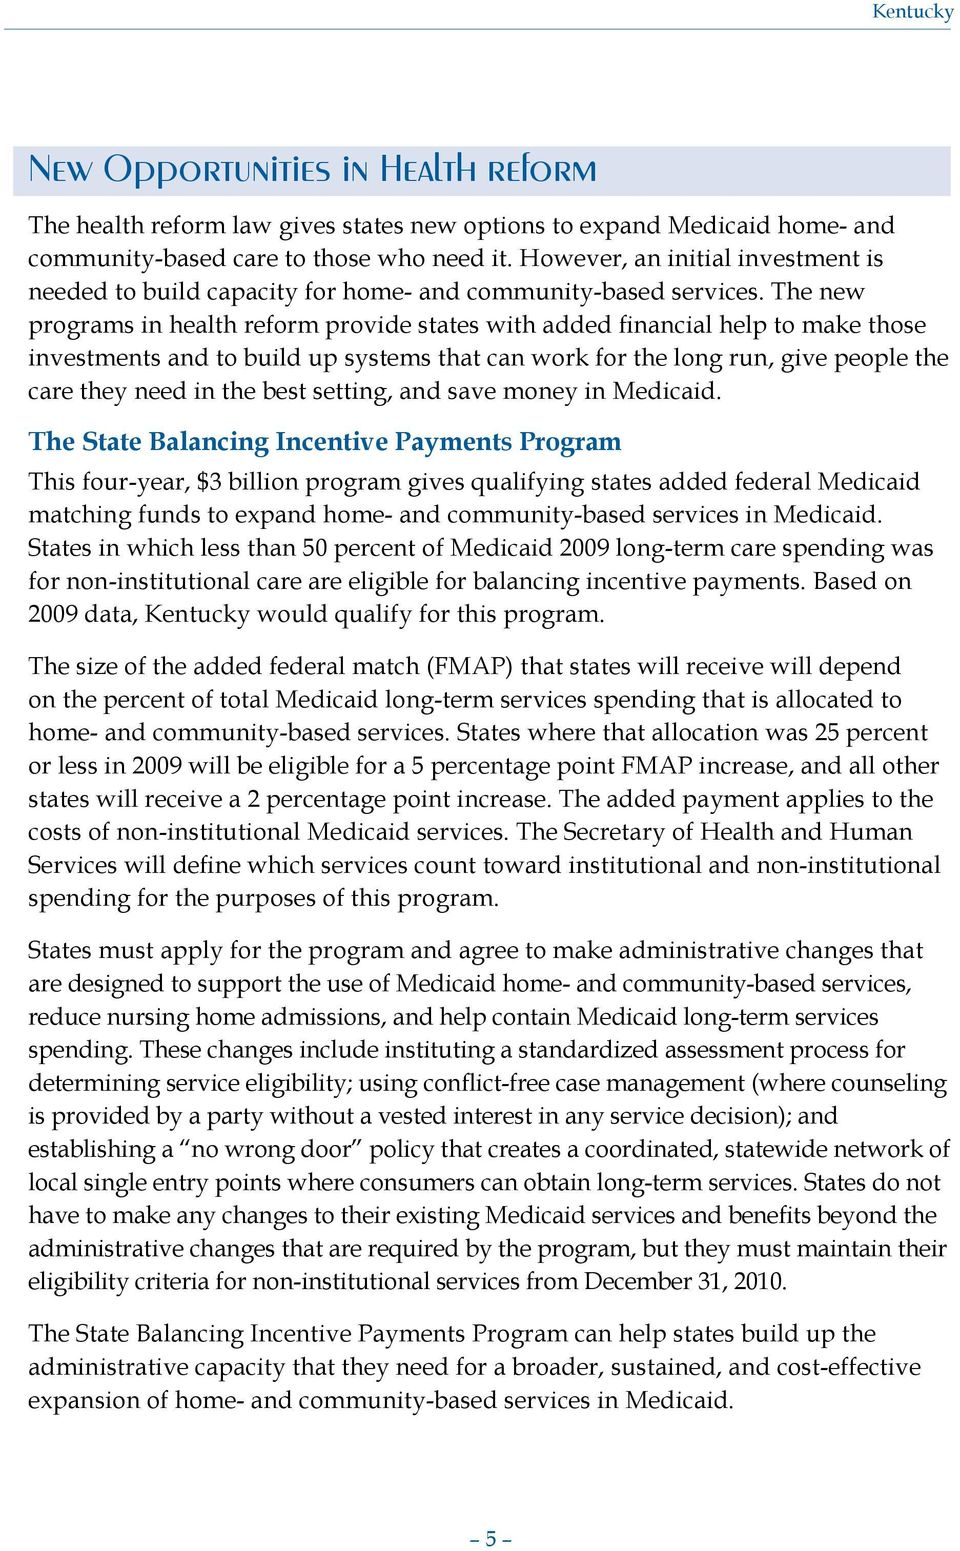 The new programs in health reform provide states with added financial help to make those investments and to build up systems that can work for the long run, give people the care they need in the best